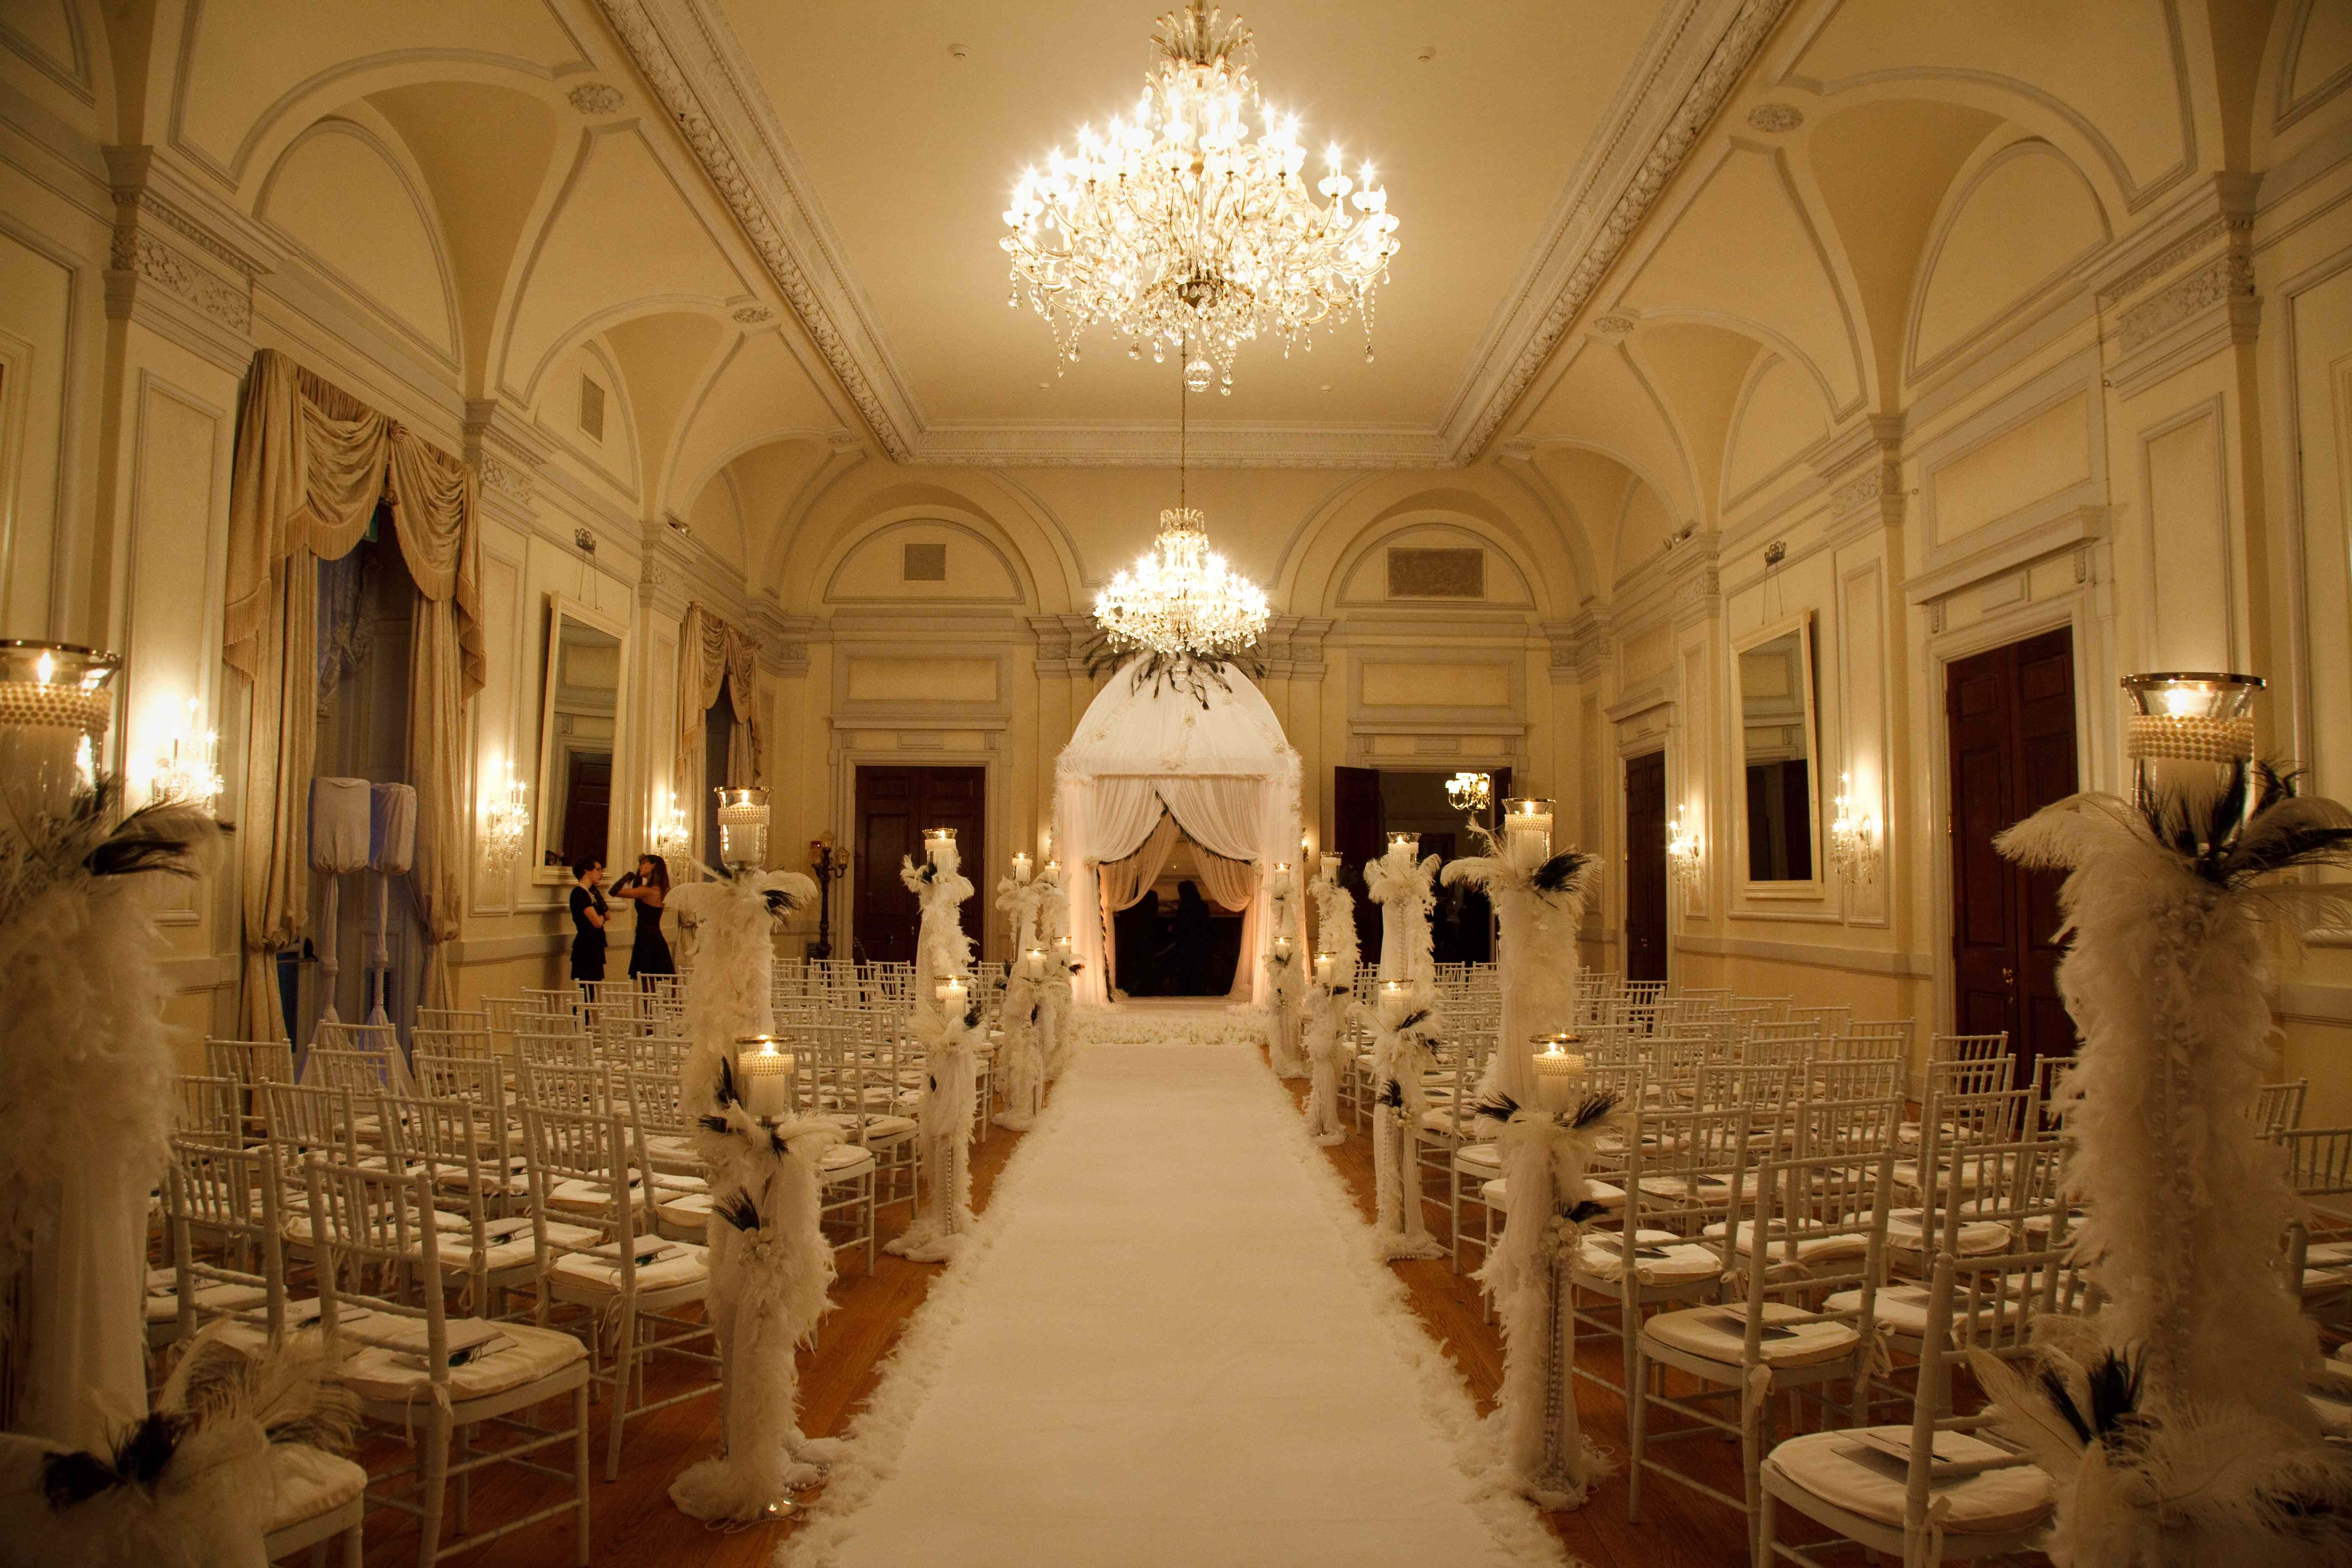 Luxury Wedding Indoor: Indoor Ceremony - Grand Ballroom